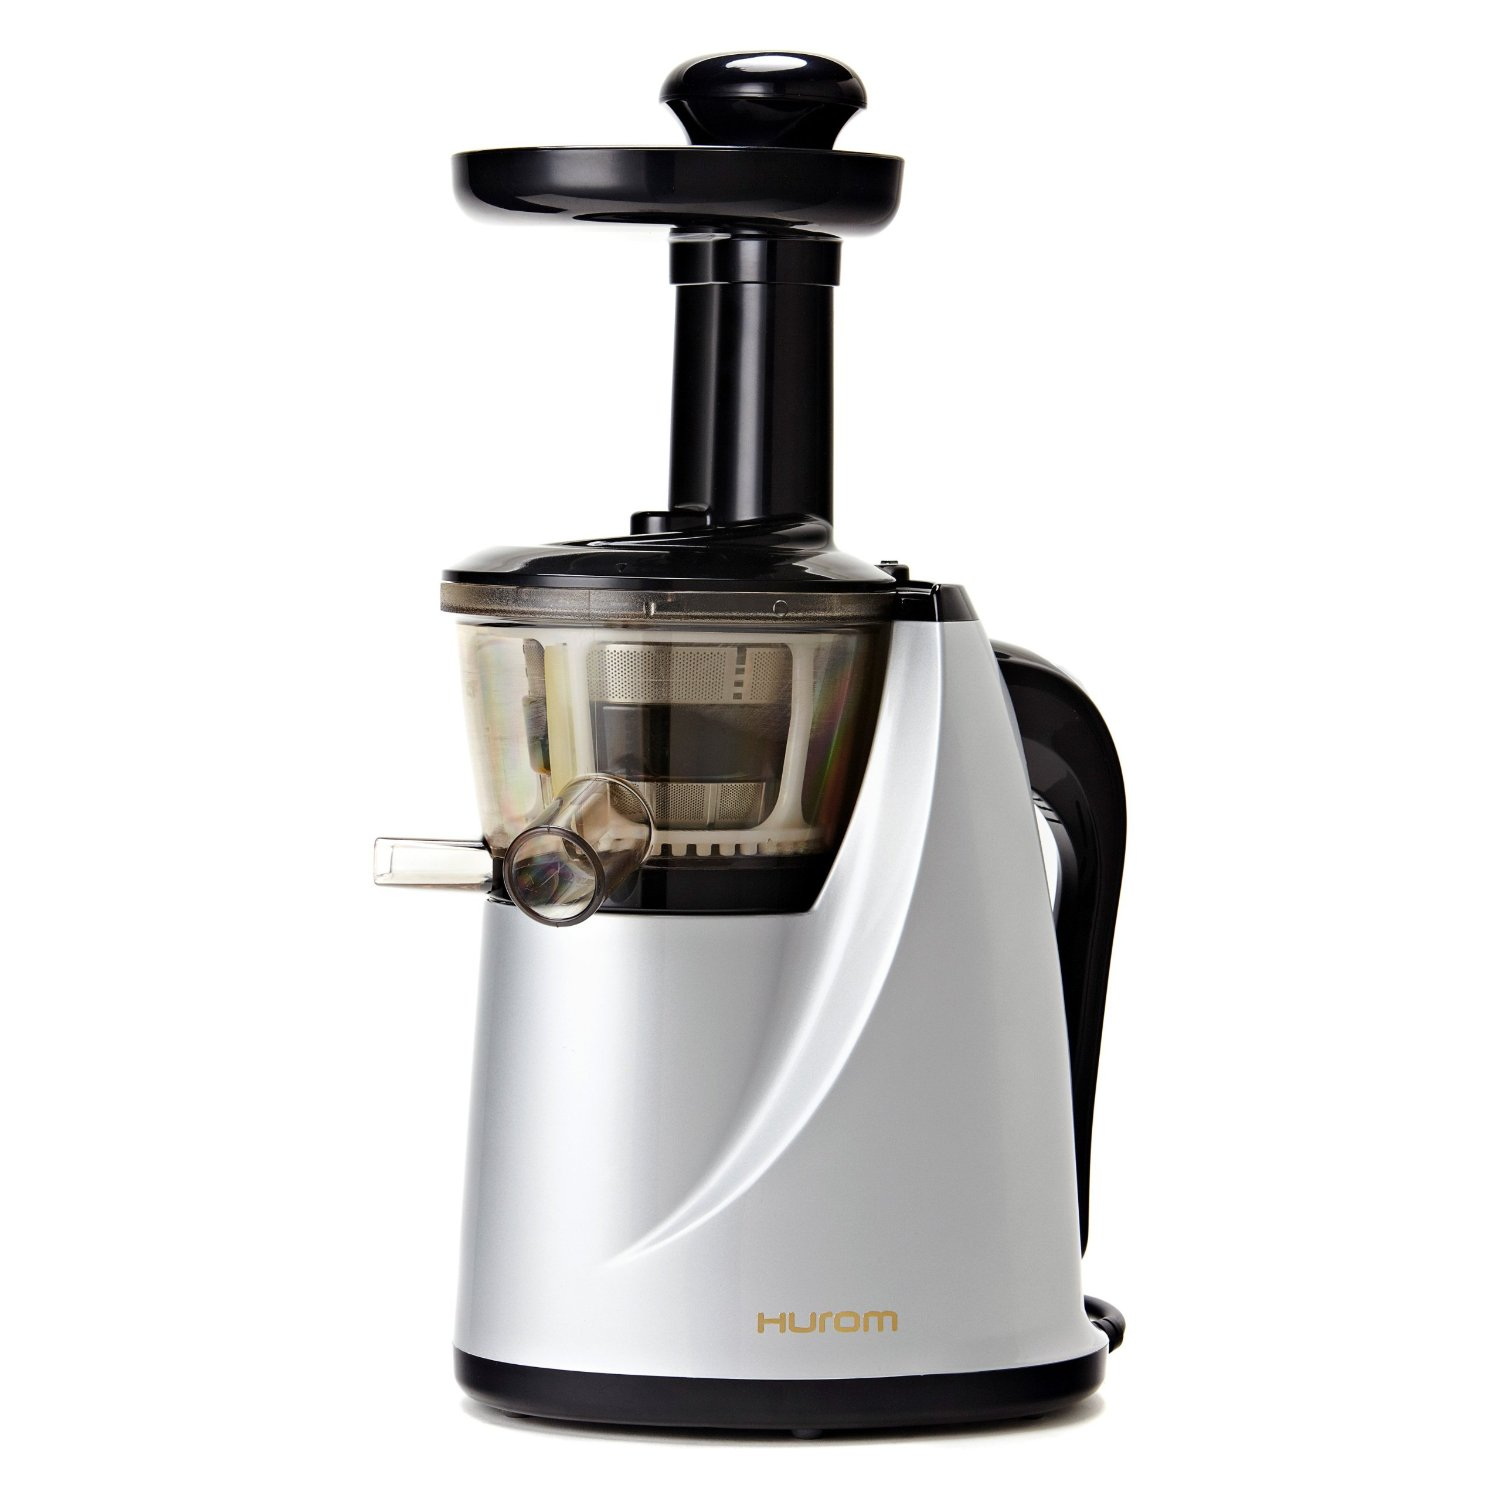 Hurom Slow Juicer Noise : Hurom HU-100 Masticating Slow Juicer Review - Best Cold Press Juicers